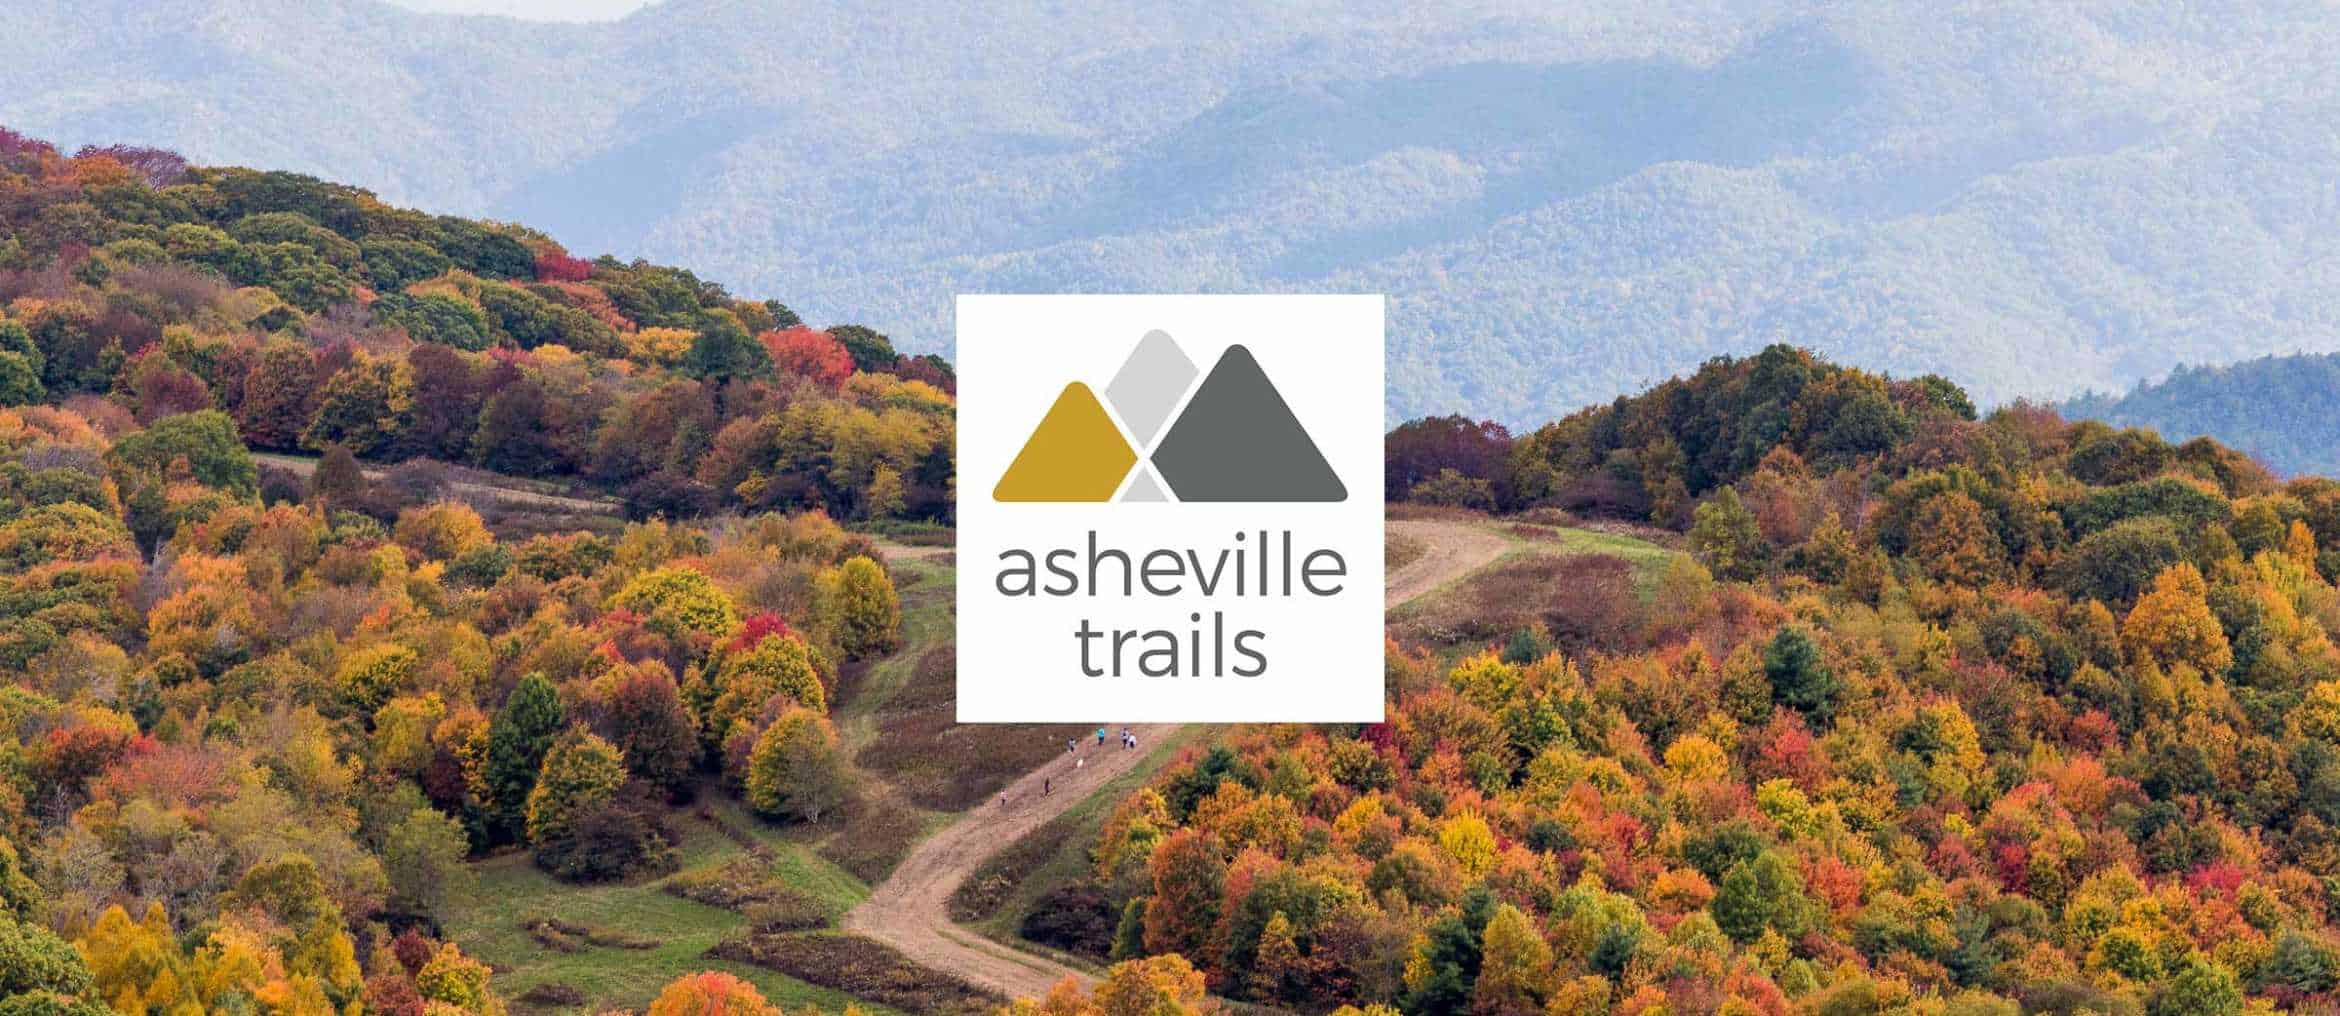 Contact Asheville Trails